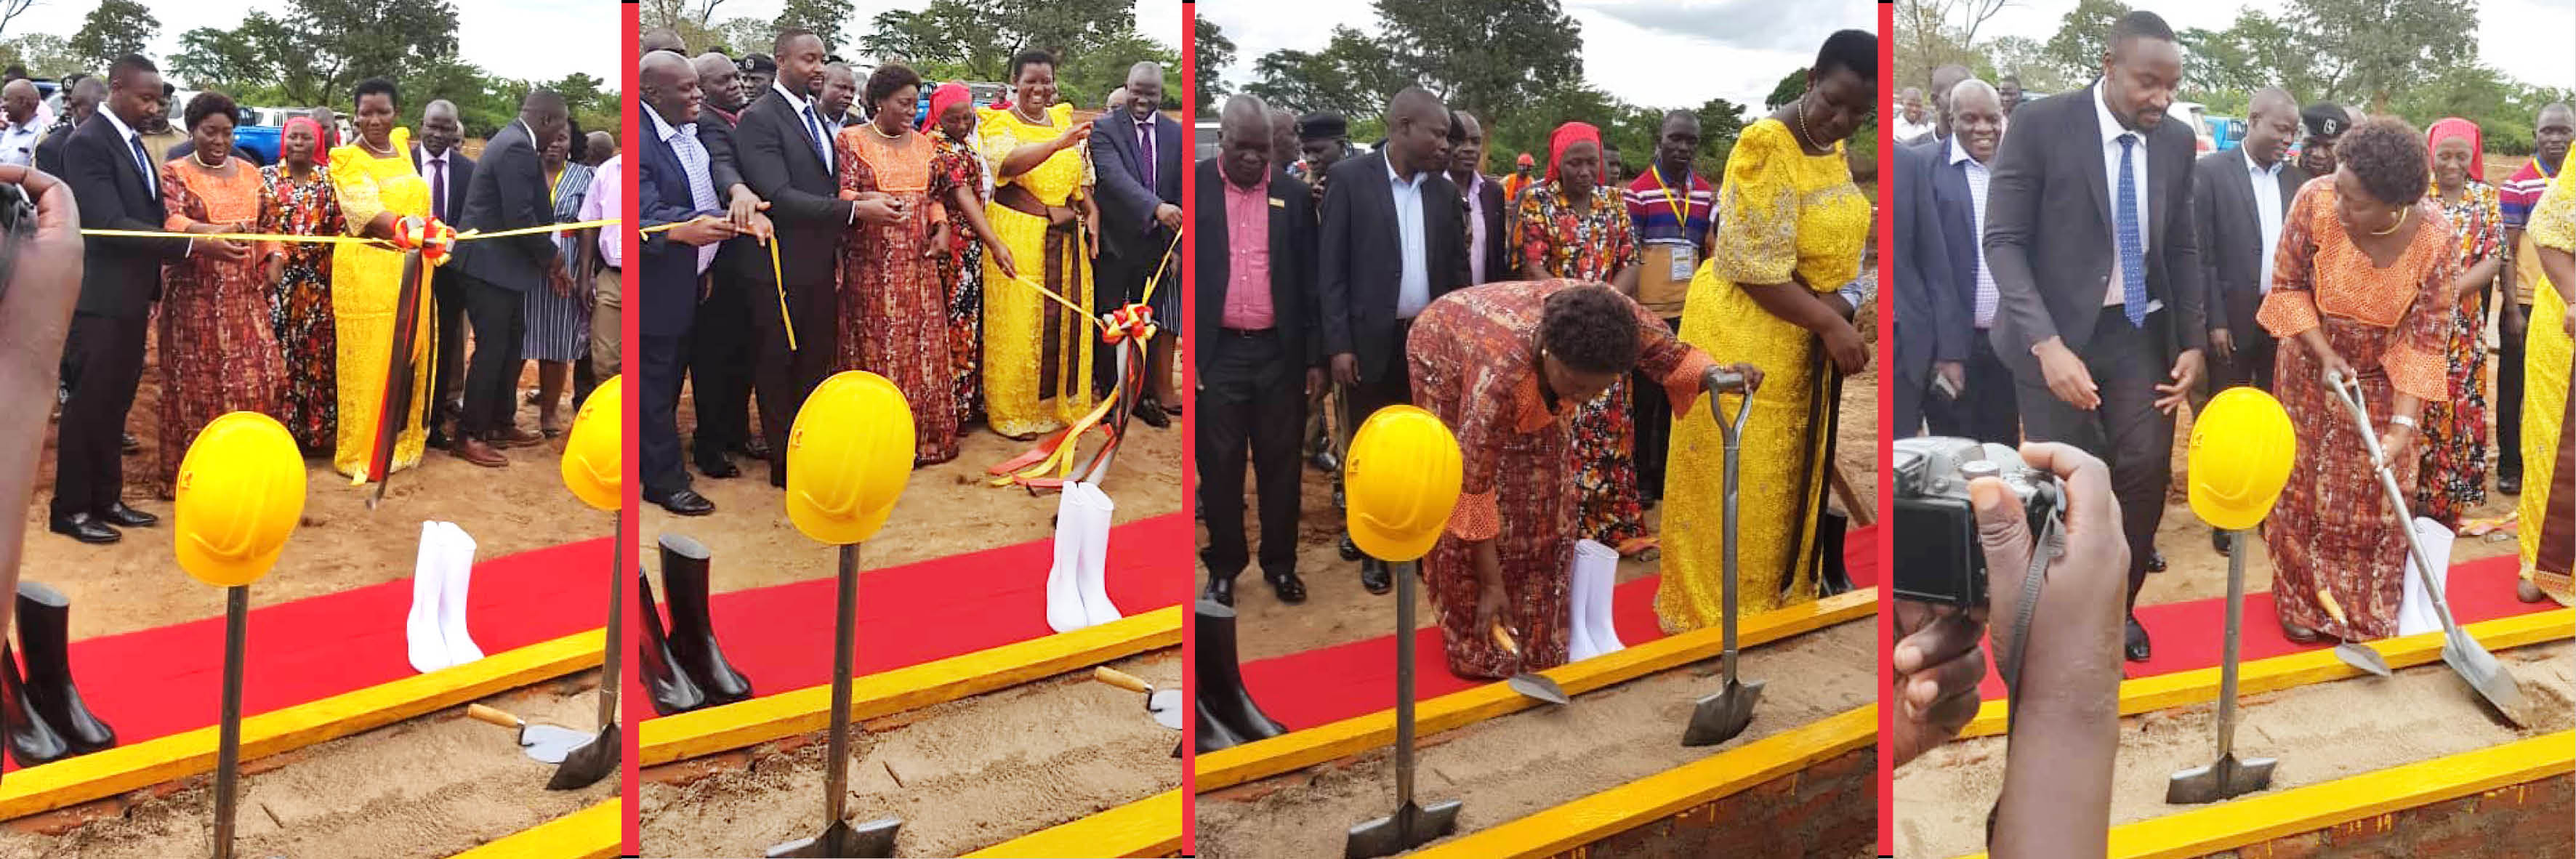 Rt.Hon. speaker launches the Busoga Livestock Transformation Project of the Kasolwe Stock Farm